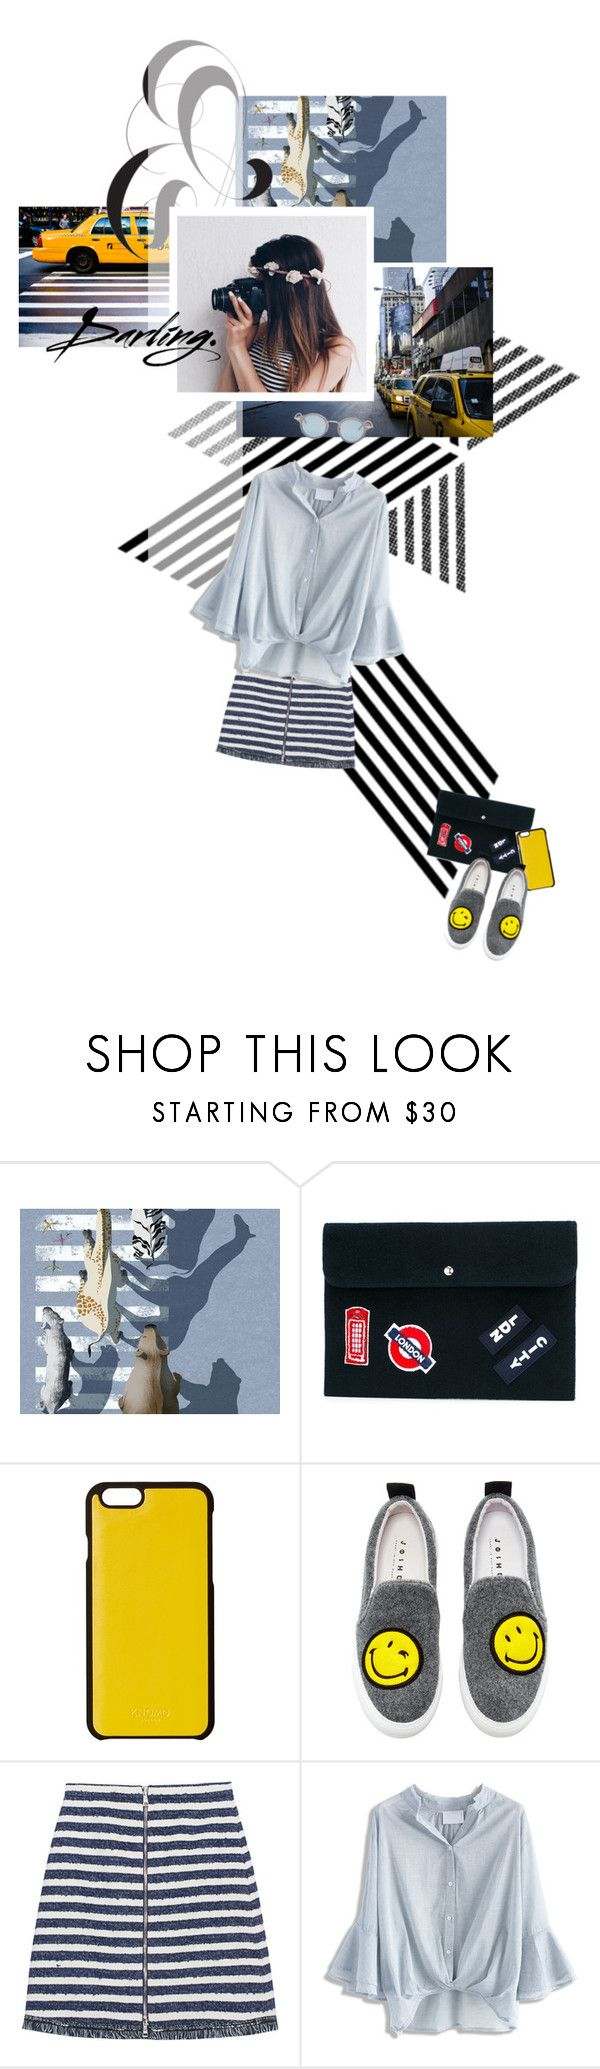 """#8 Stripes"" by corverabrowne ❤ liked on Polyvore featuring TAXI, Joshua's, Knomo, Sonia by Sonia Rykiel, Chicwish, Thom Browne, stylemission and SM8"